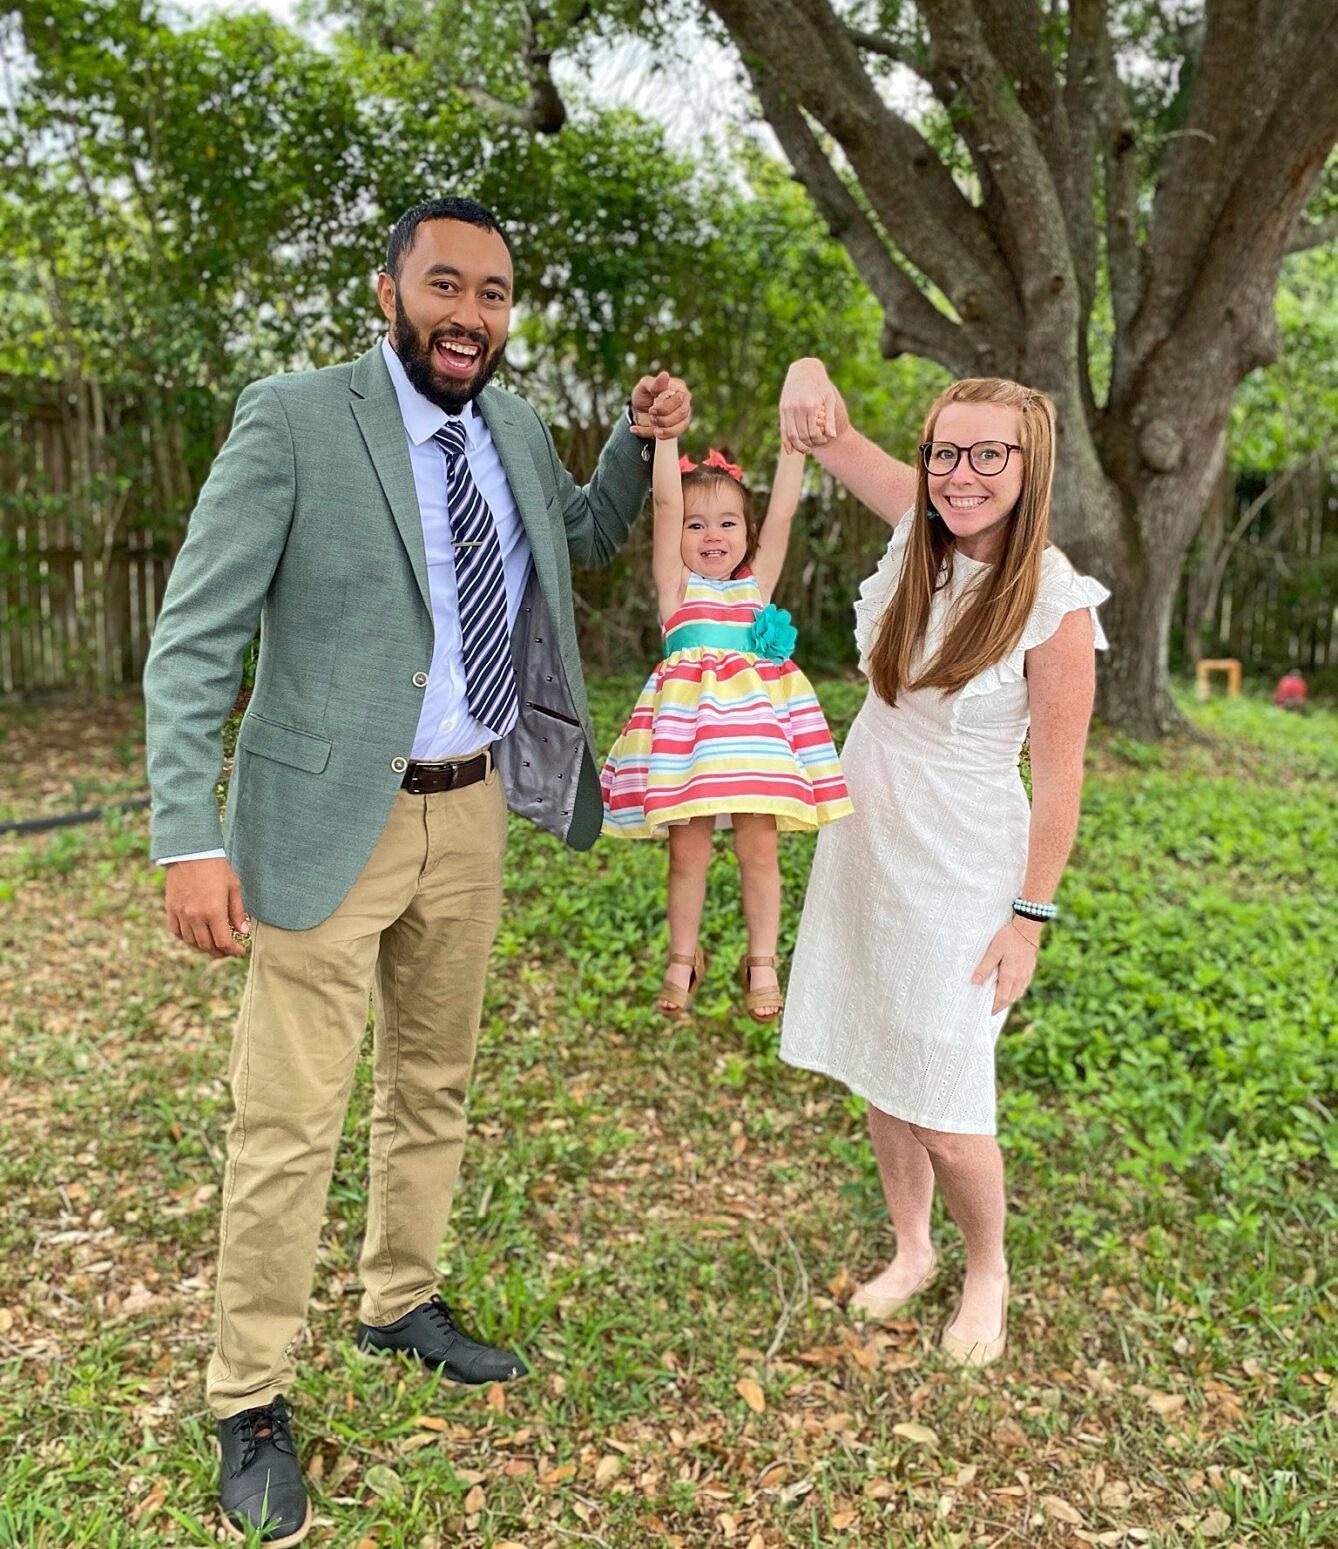 A deeper faith quest leads to couple's conversion